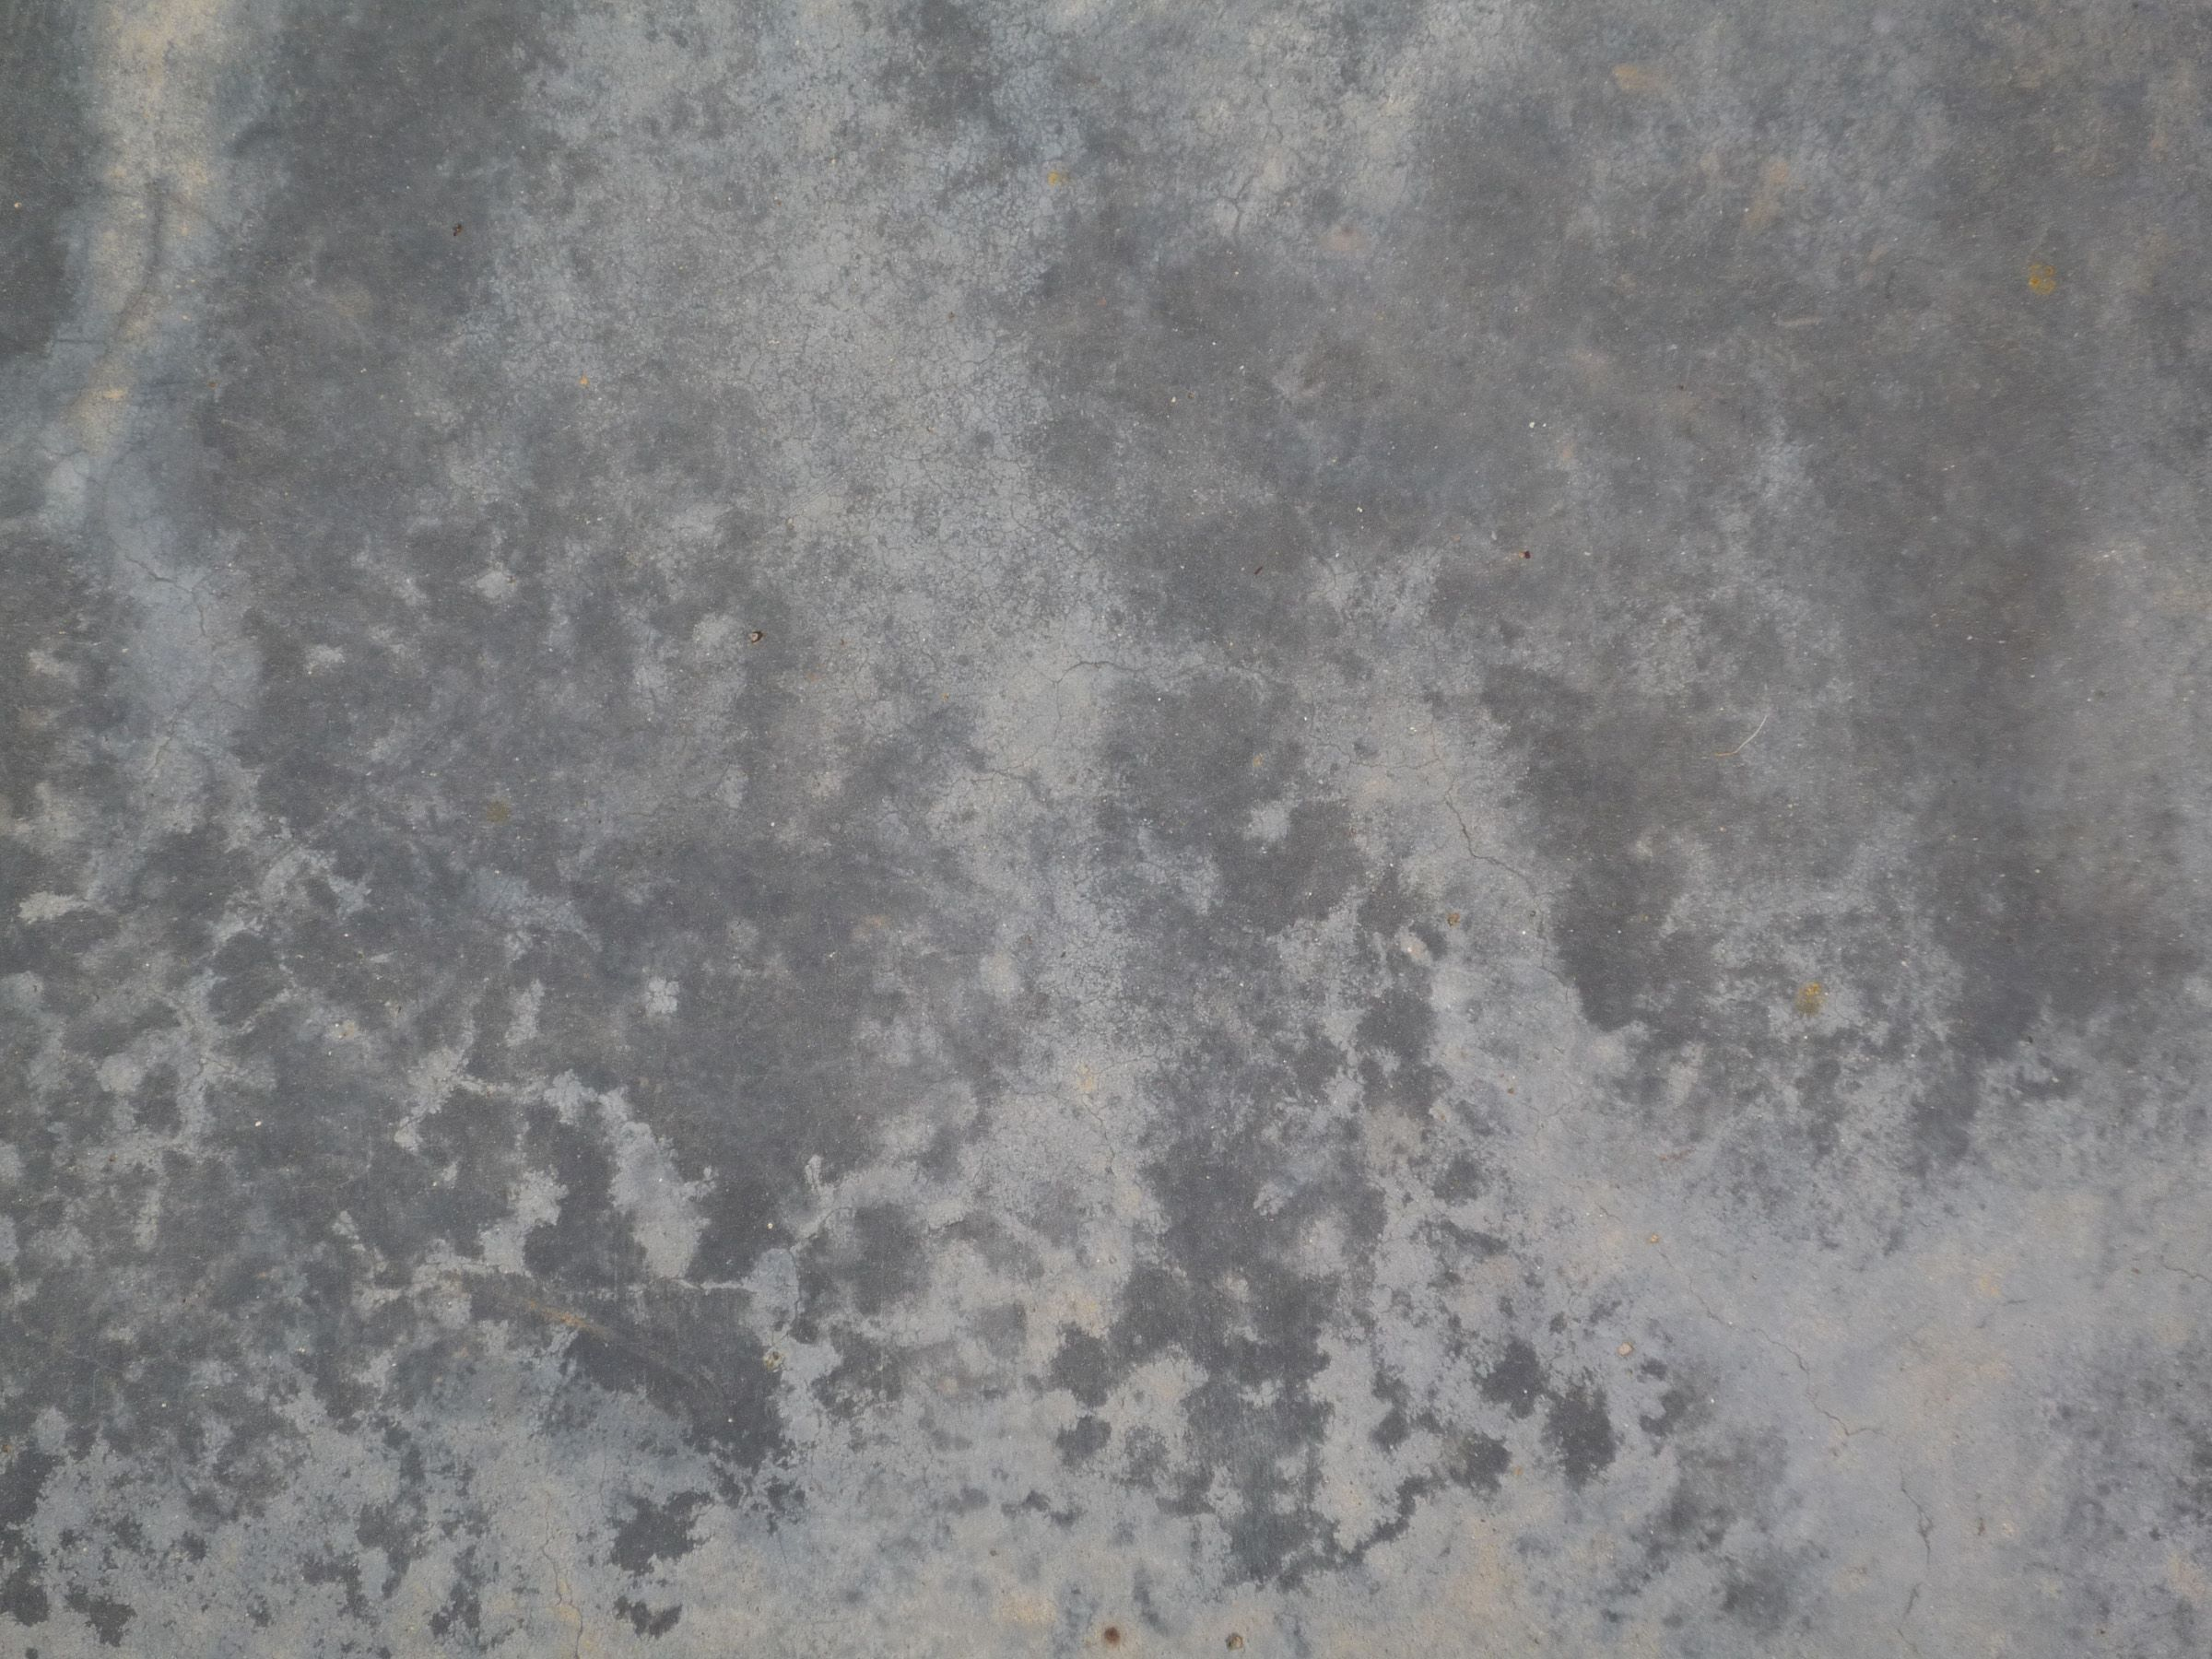 Dark Concrete Floor Texture dark concrete floor texture dark concrete texture | finitions